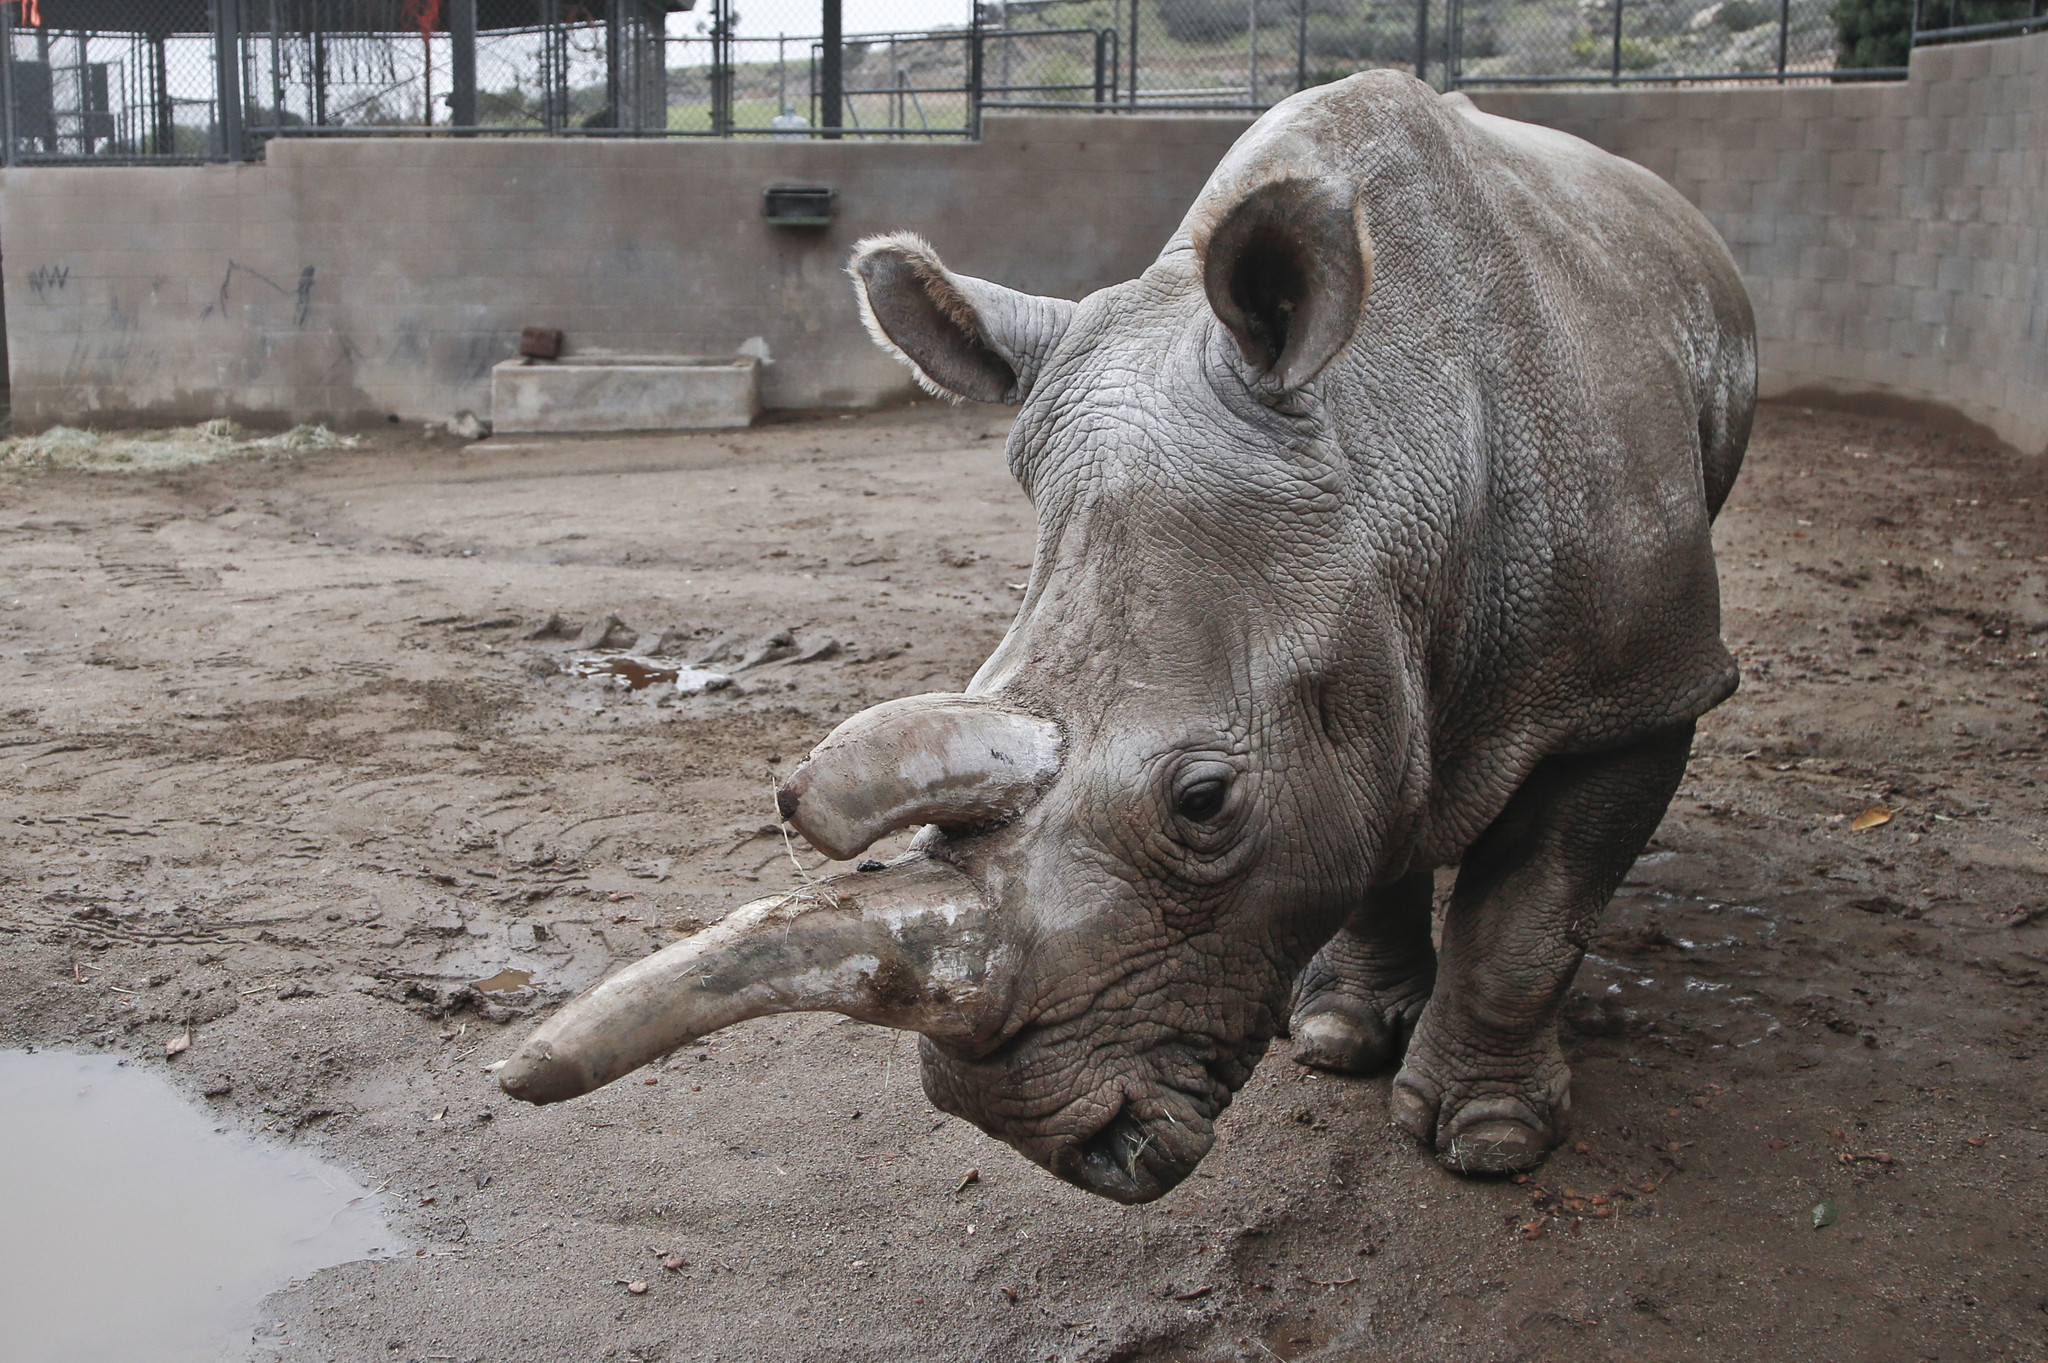 One of last 4 northern white rhinos on Earth is euthanized